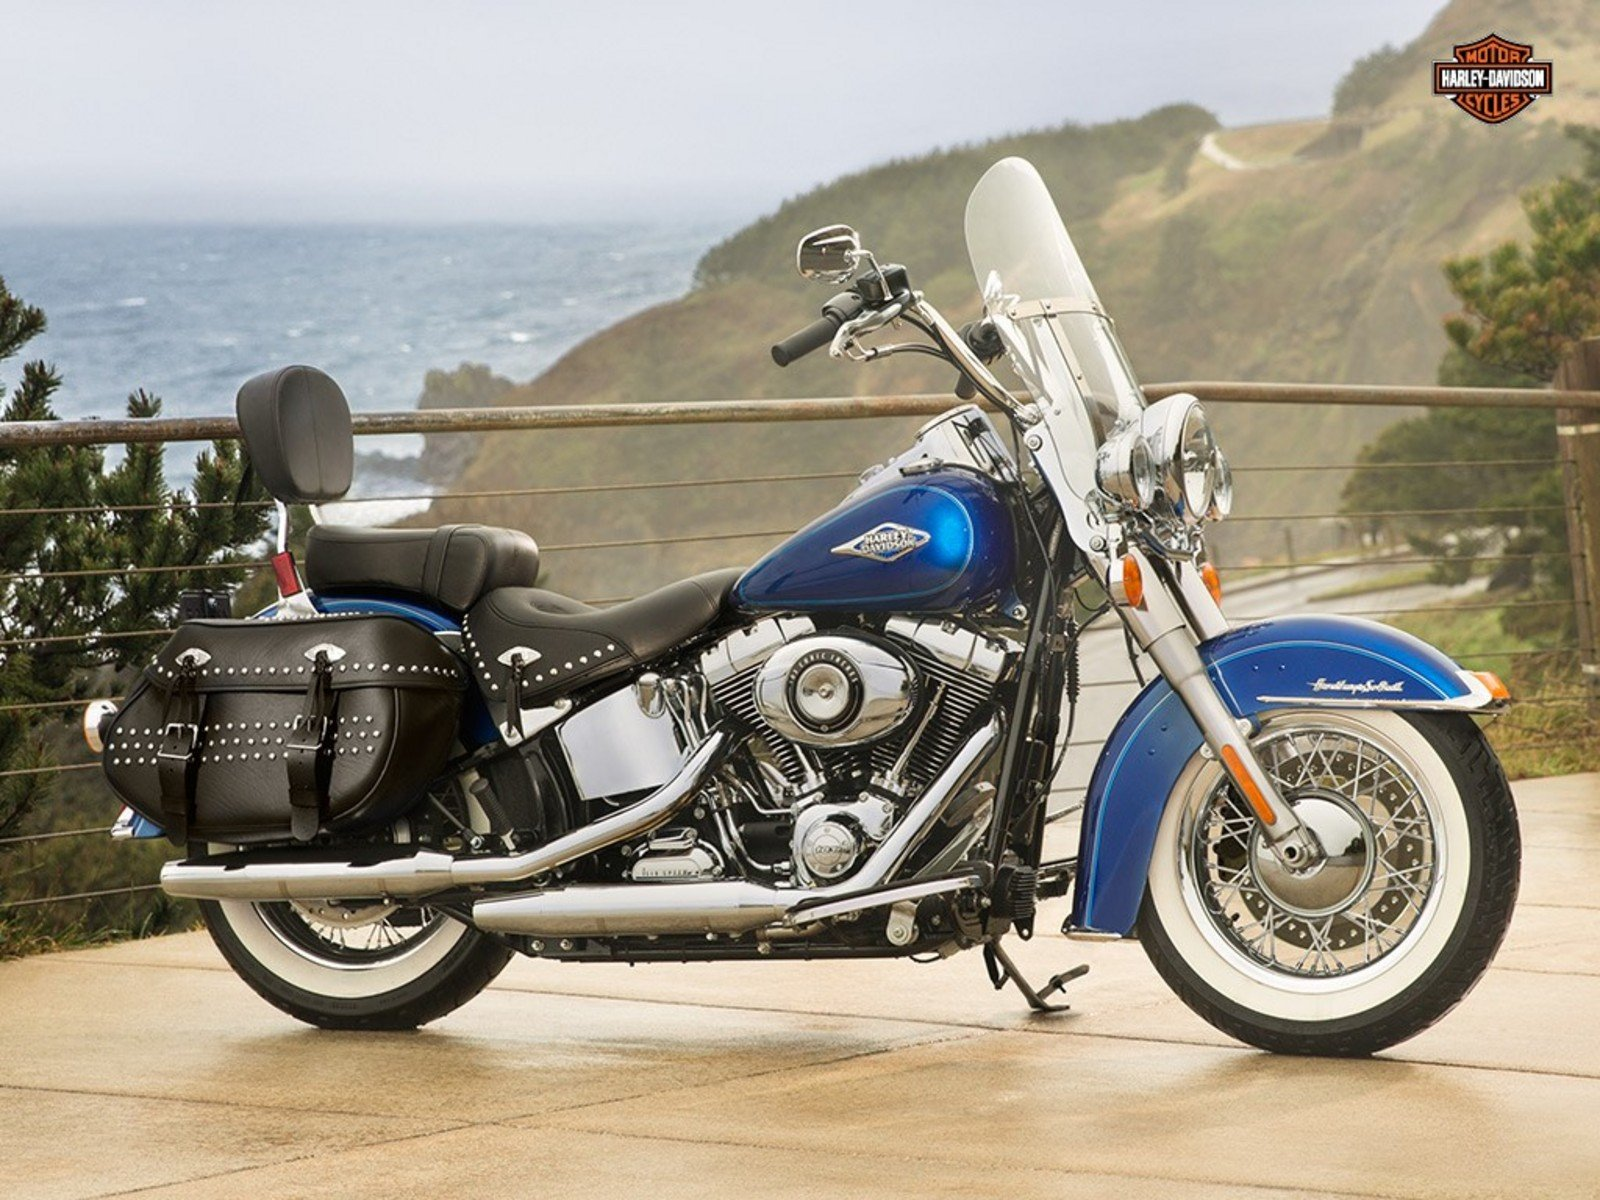 2016 harley heritage softail classic review